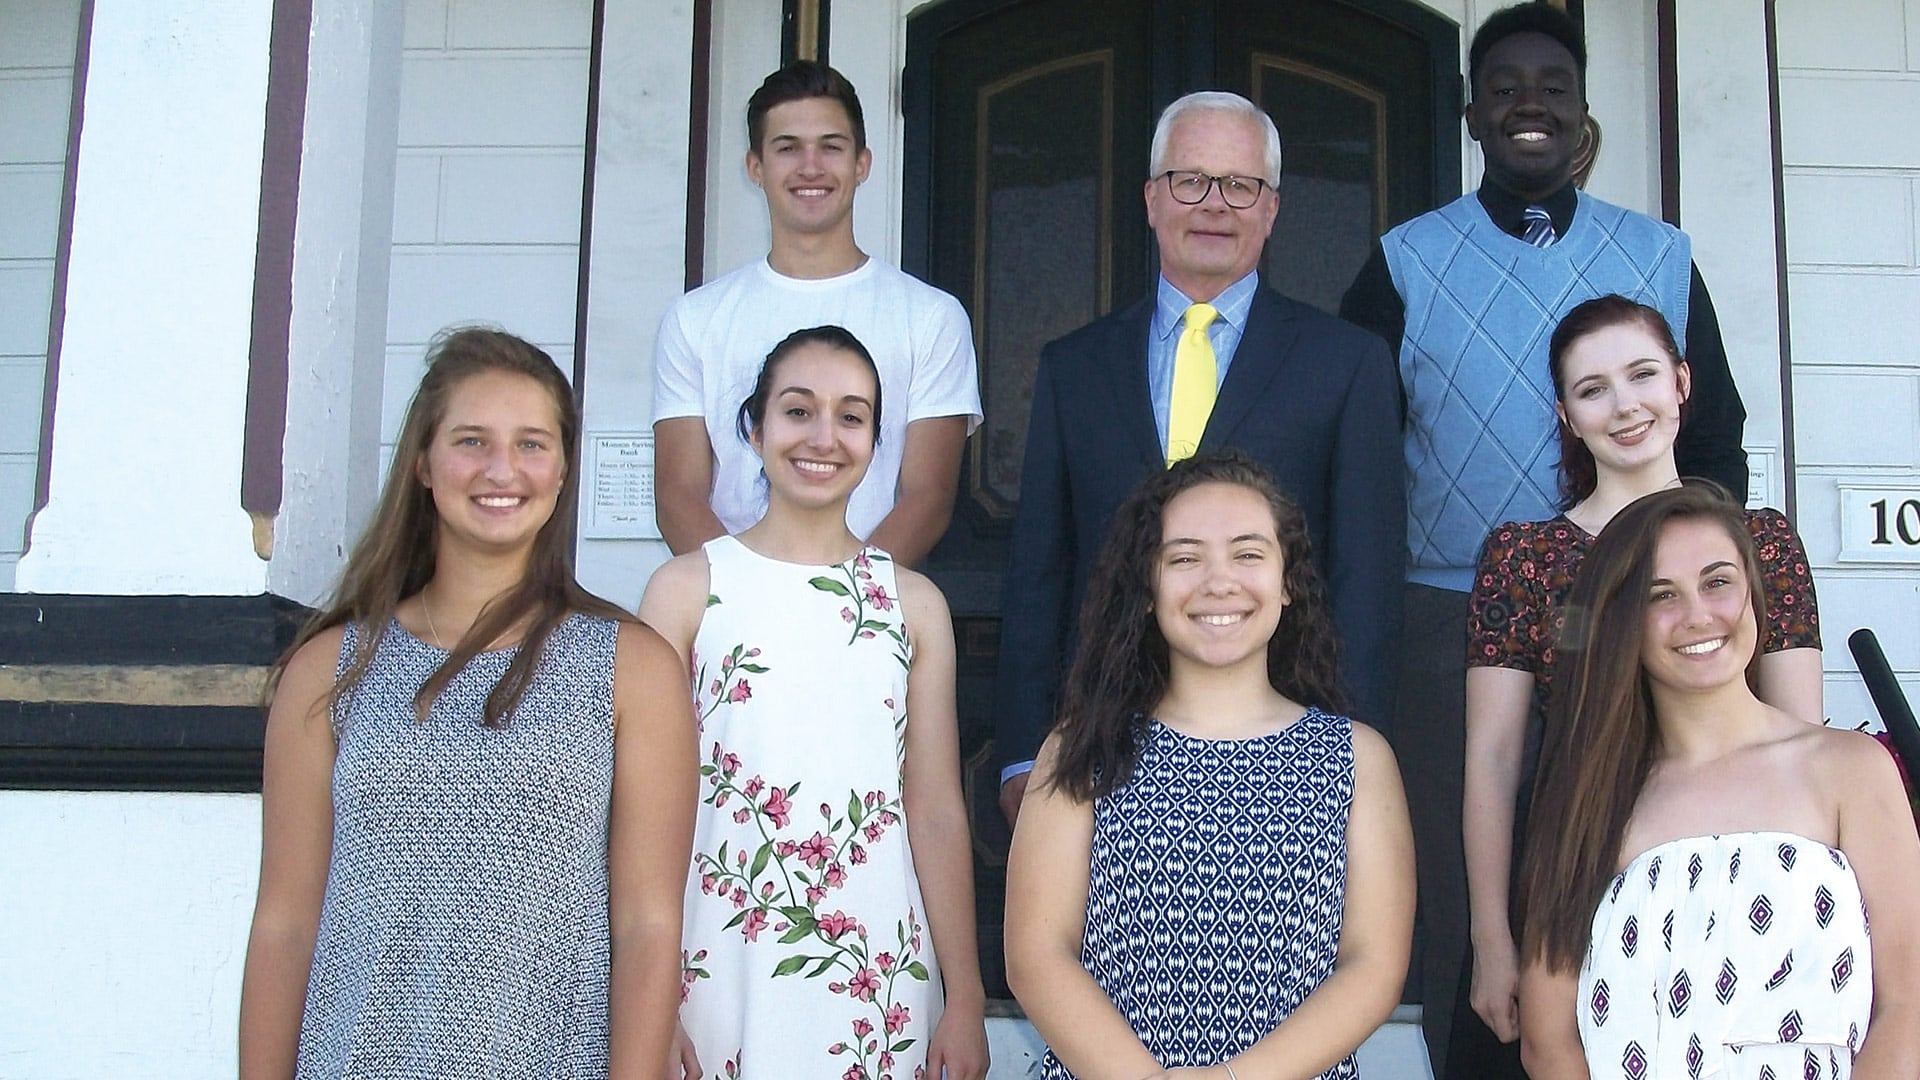 Steve Lowell, president and CEO of Monson Savings Bank, with some of the scholarship winners.